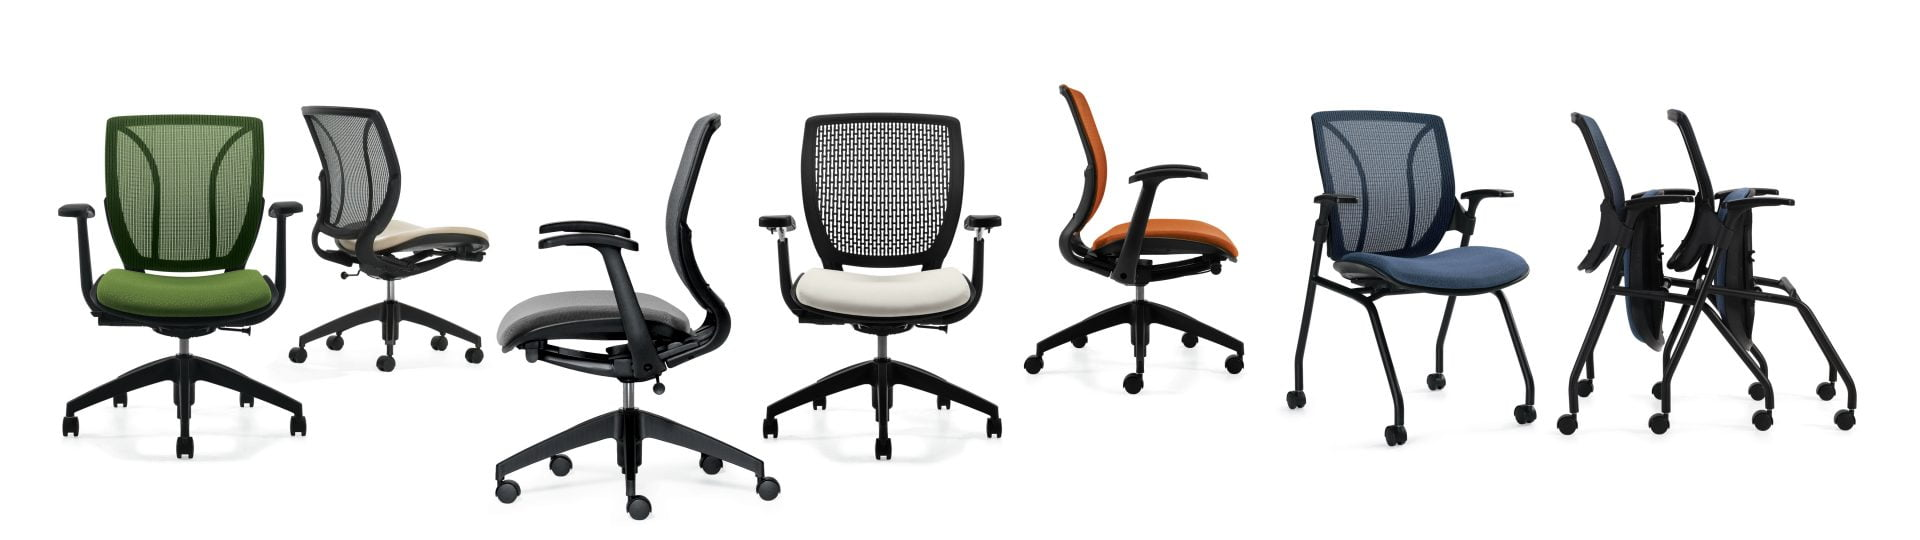 global desk chairs and seating